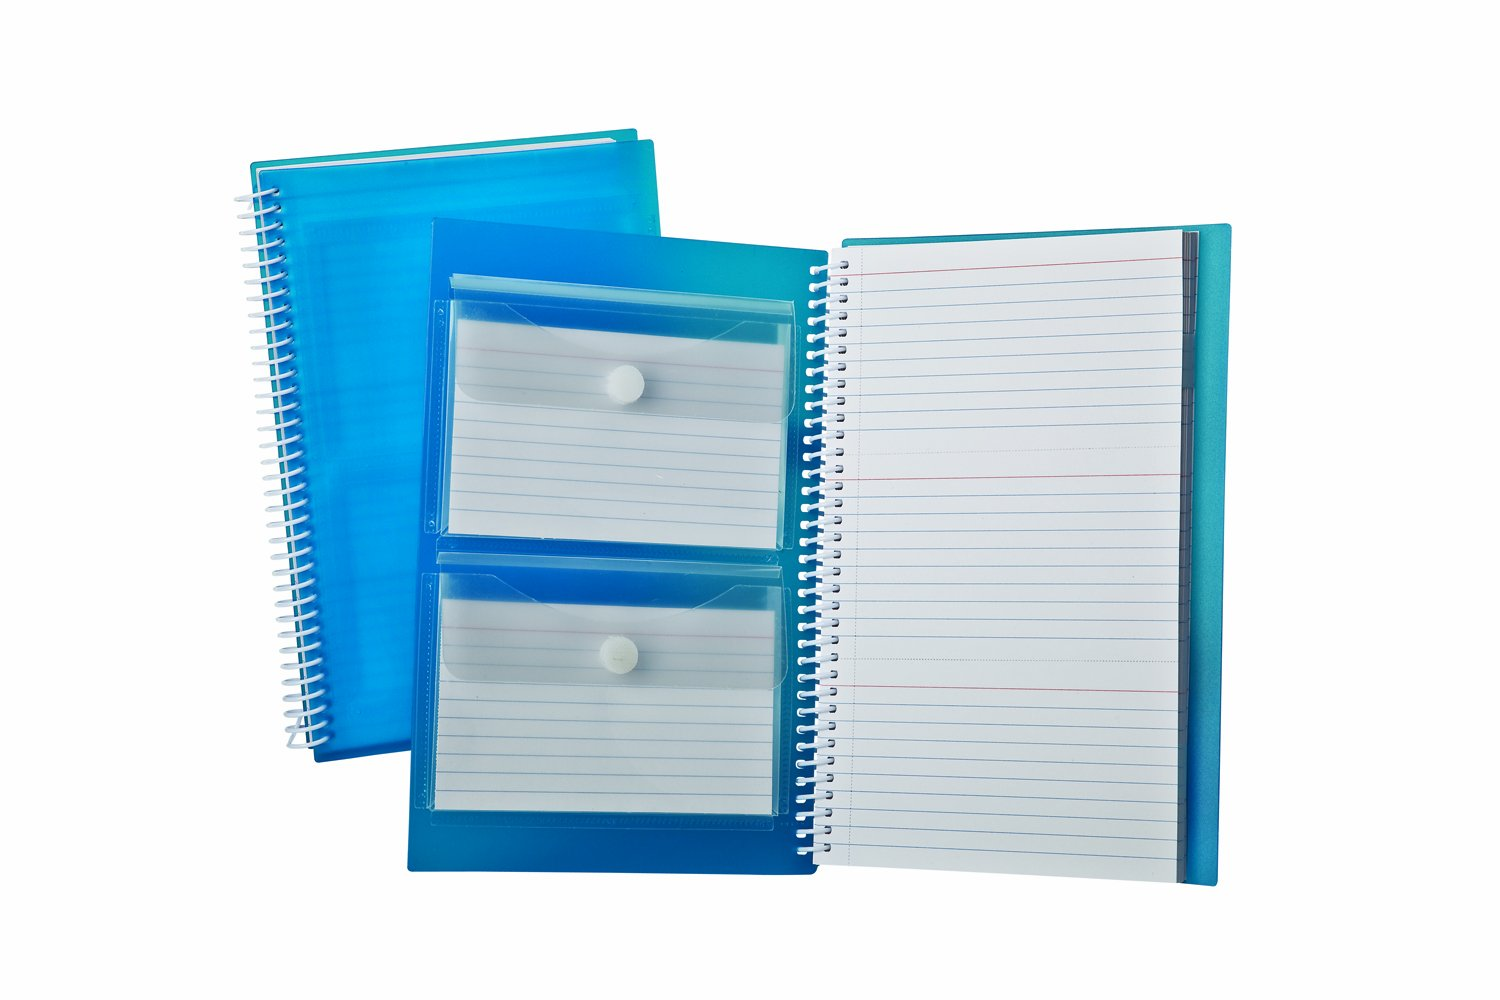 Oxford 40288 Index Card Notebook, 3 x 5 Inches White Ruled, 3 Perforated Cards per Sheet (50 Sheets Total) Esselte Corporation